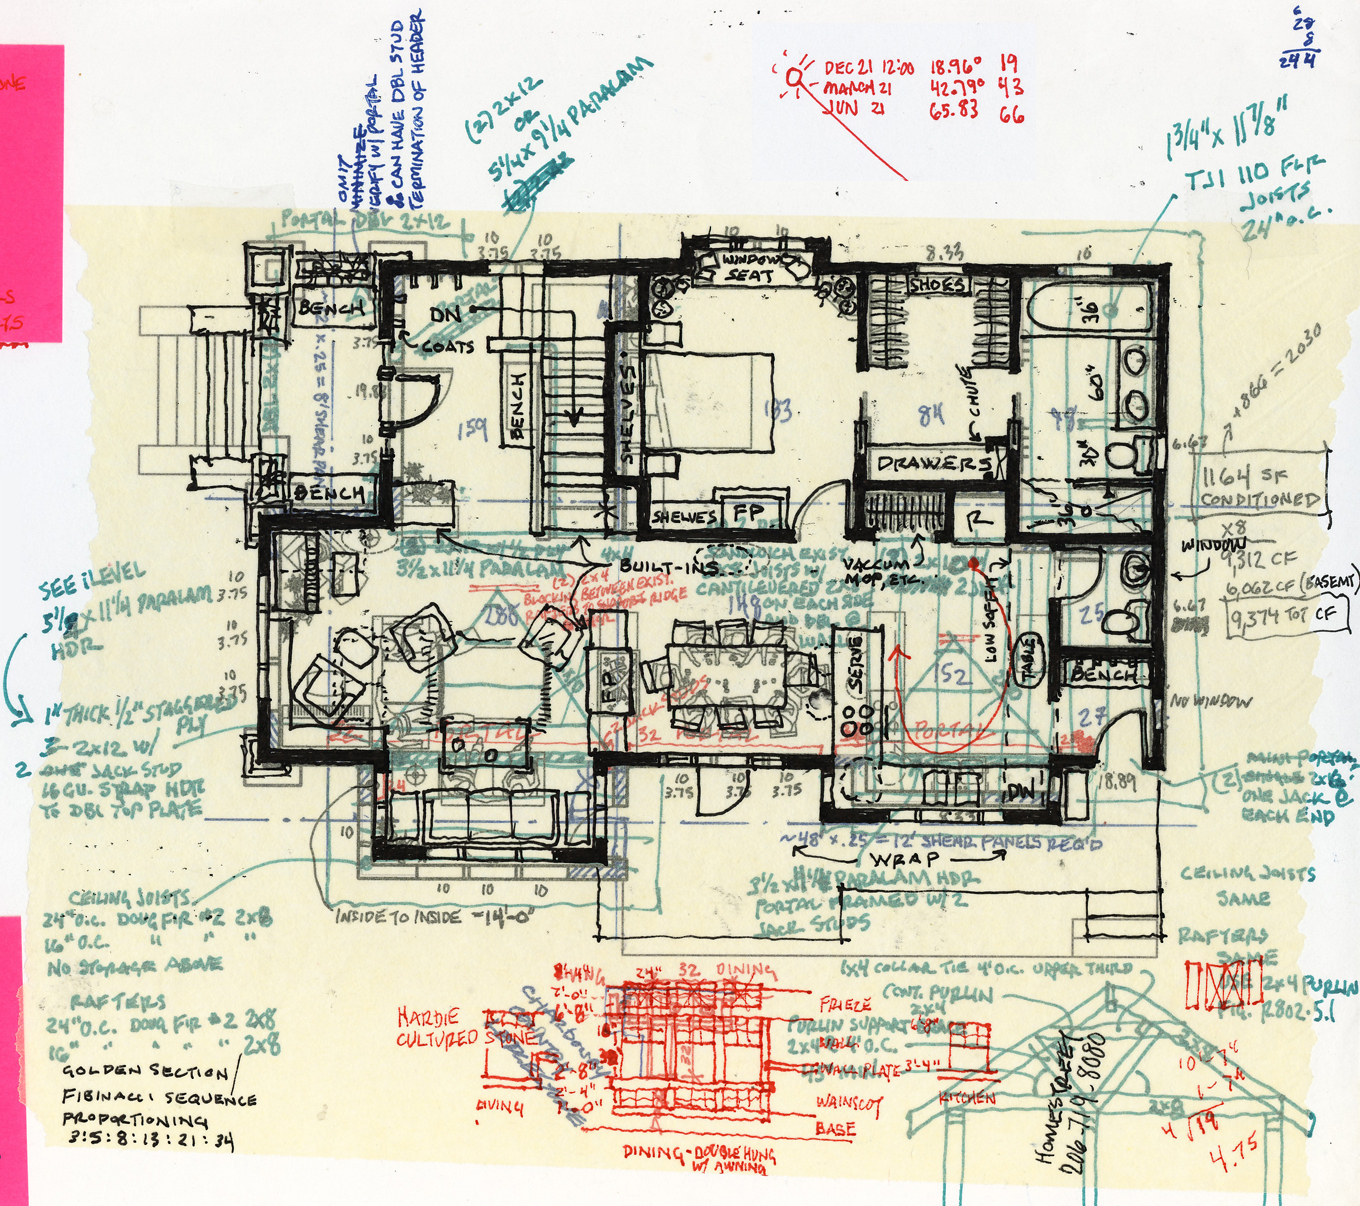 Craftsman remodel leed gold brandon d burmeister design for Floor plan sketch